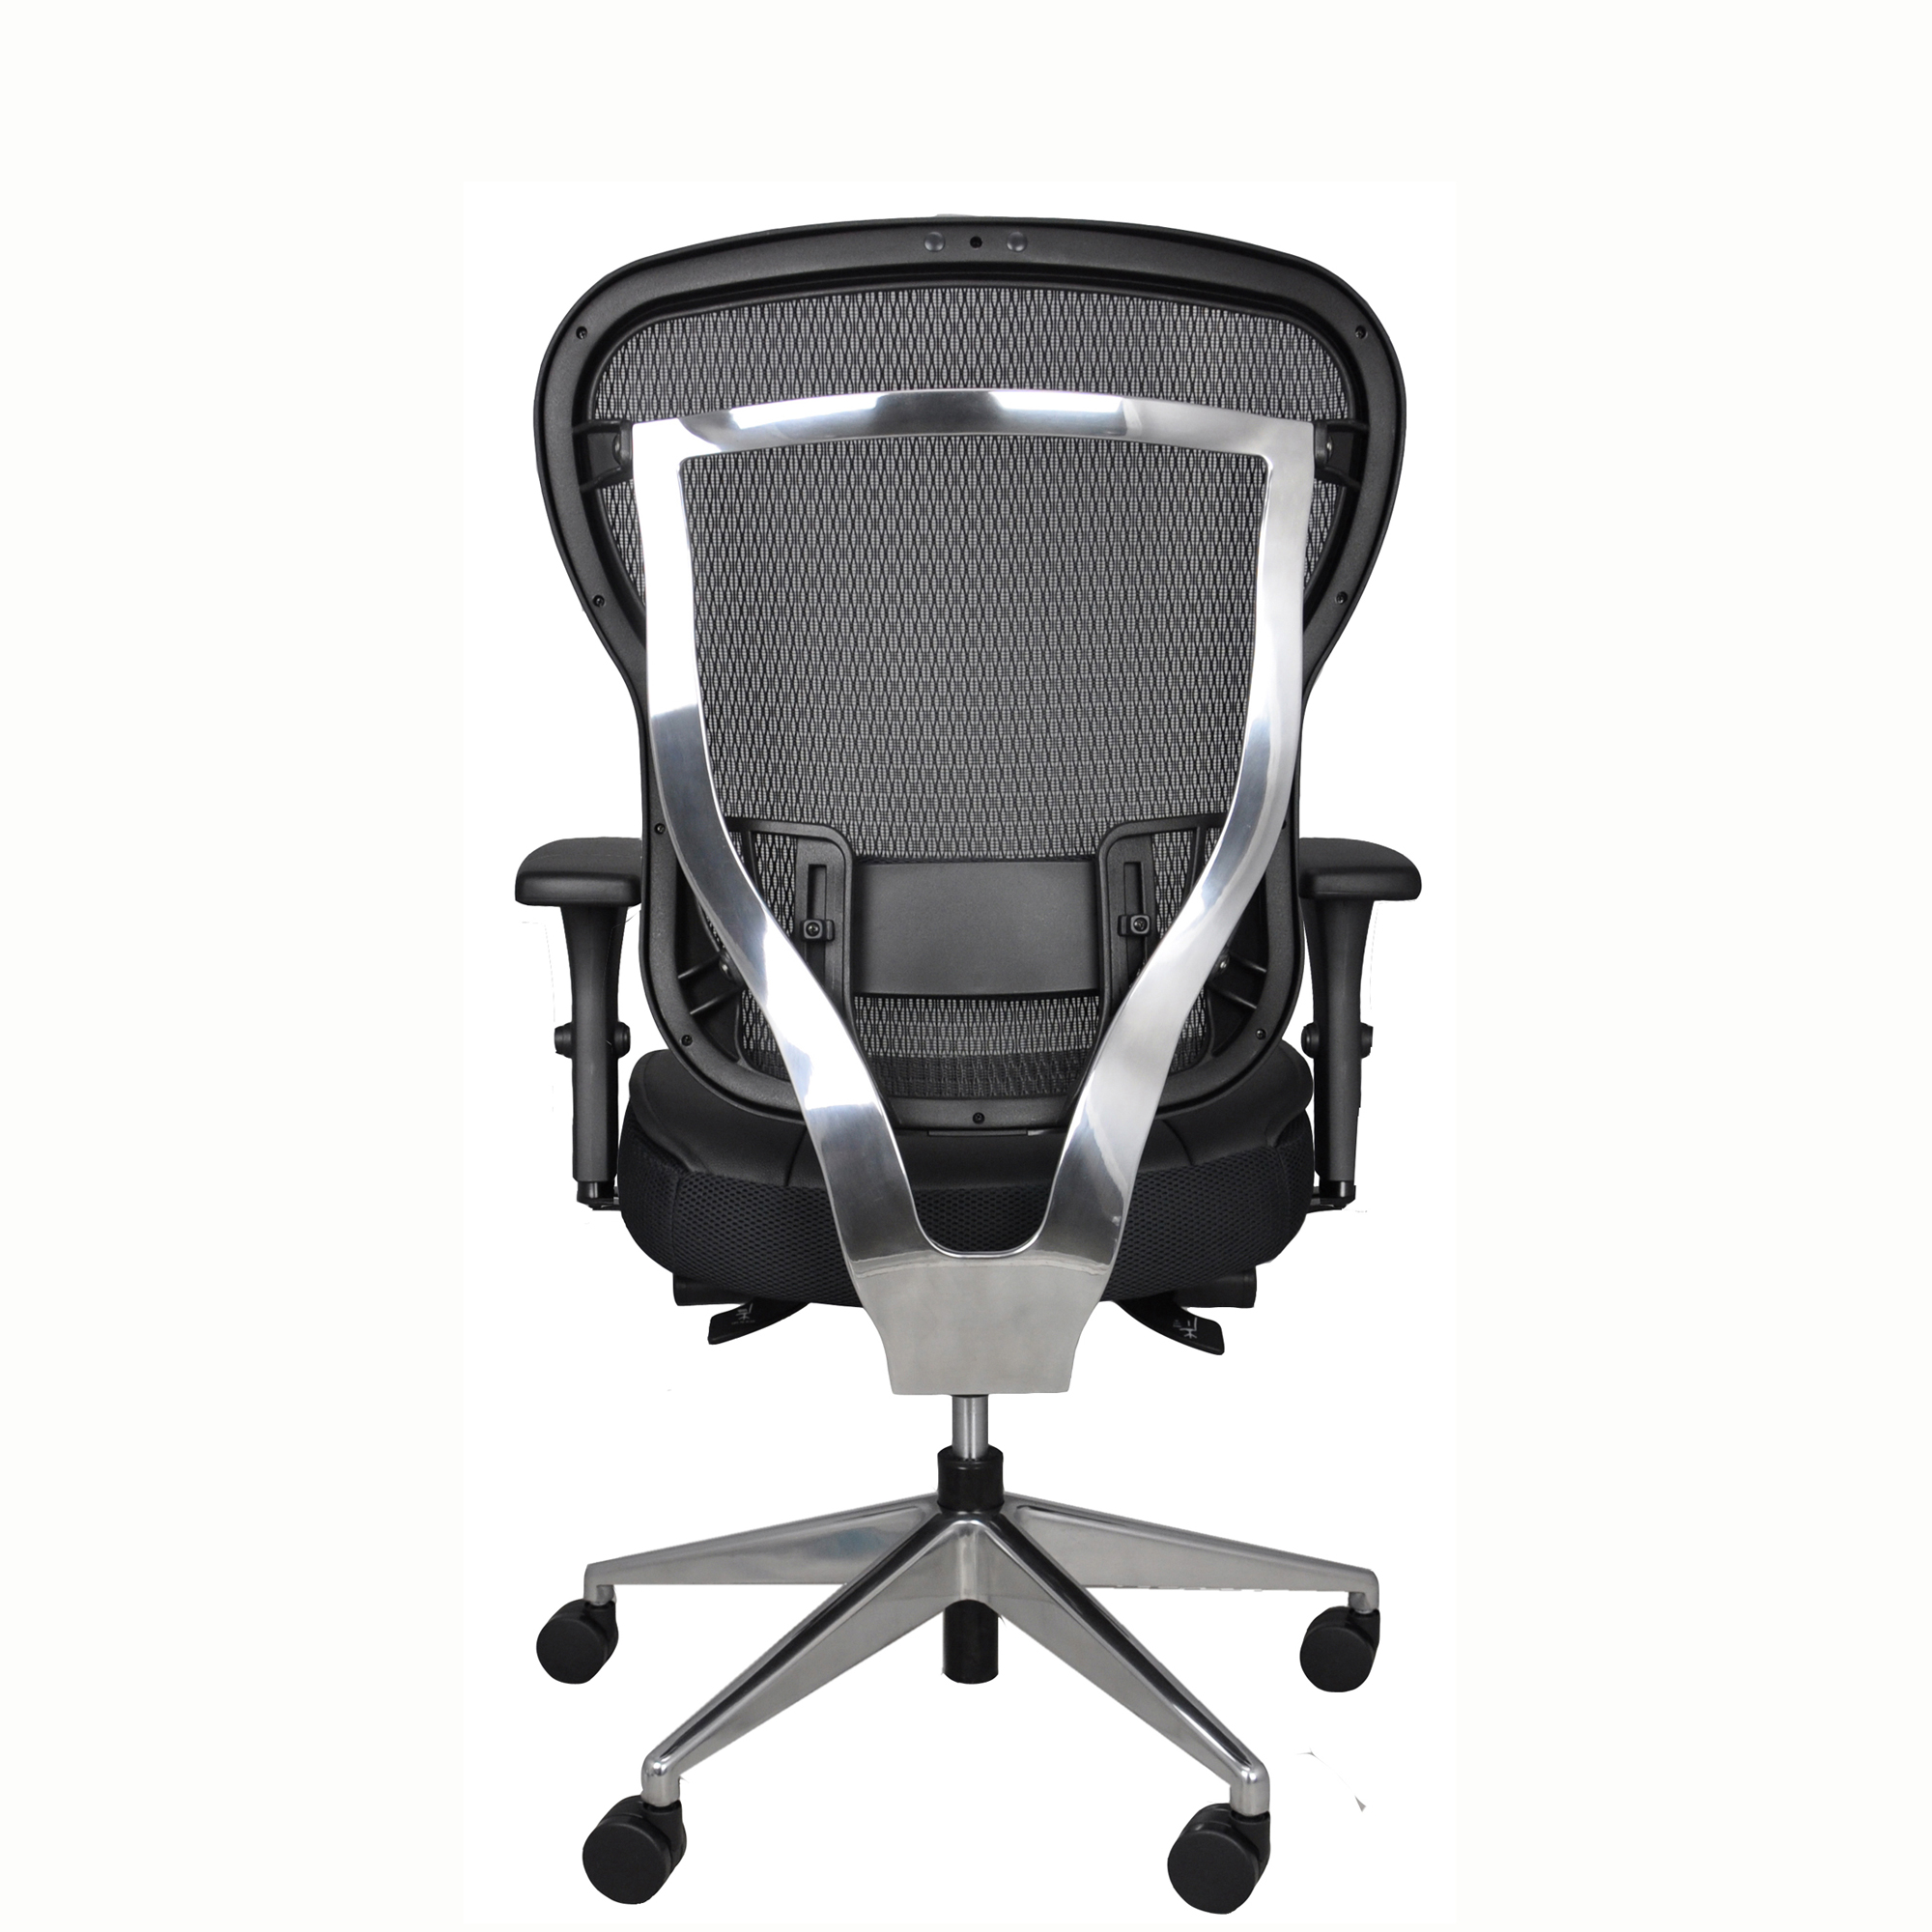 Rika Mesh Back Home Office Chair - Back View